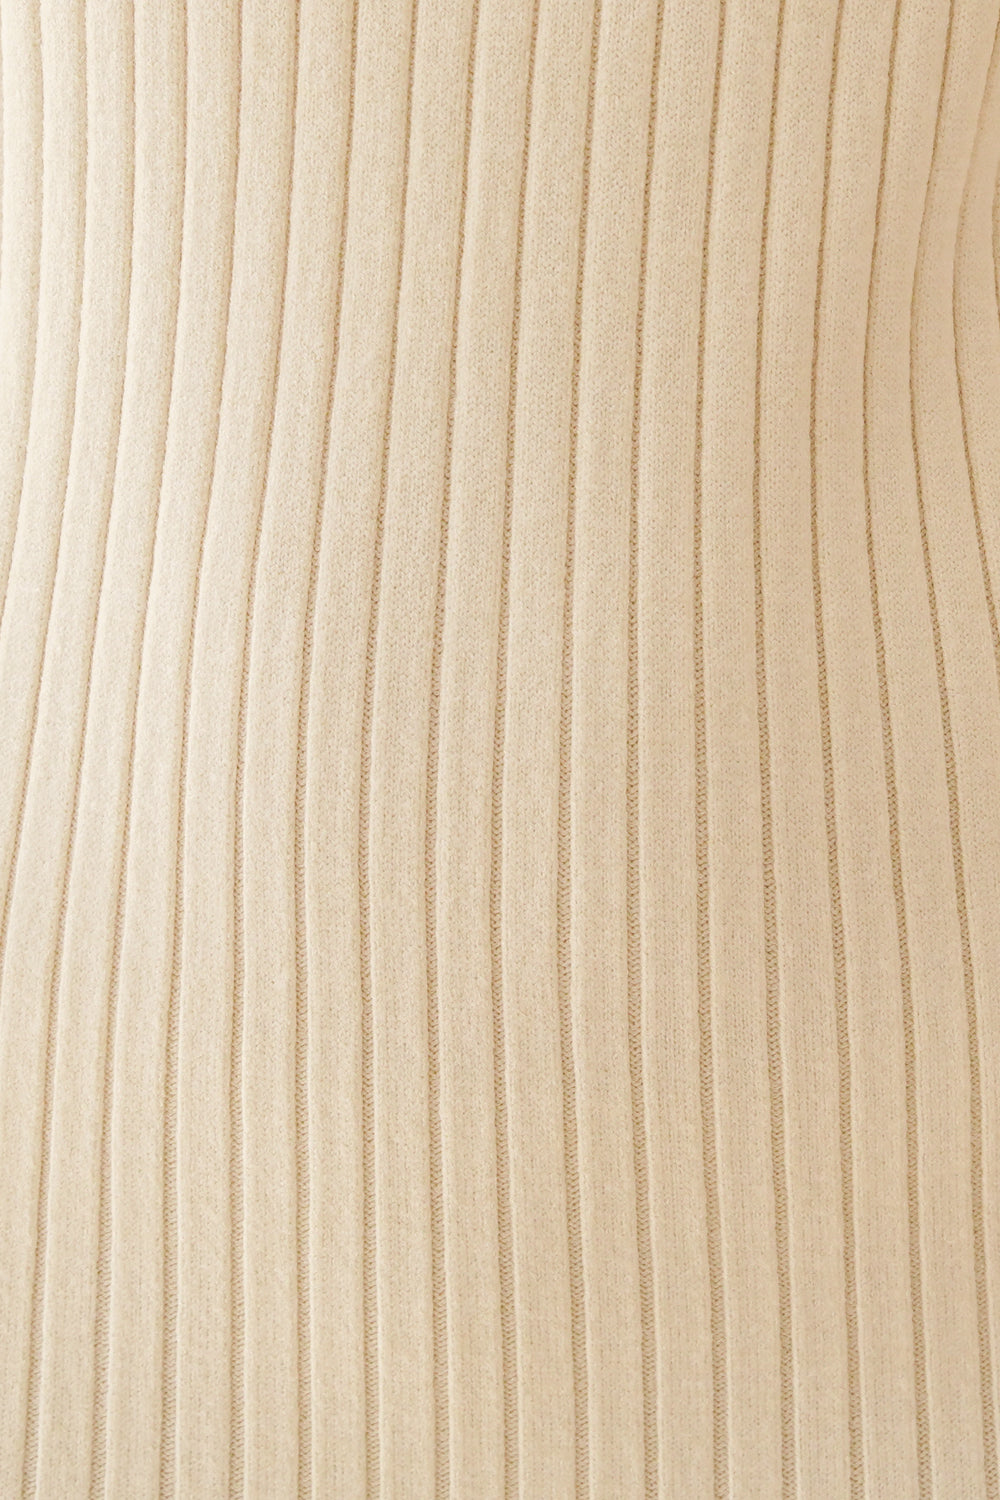 Revolution Ribbed Knit Midi Dress // Cream